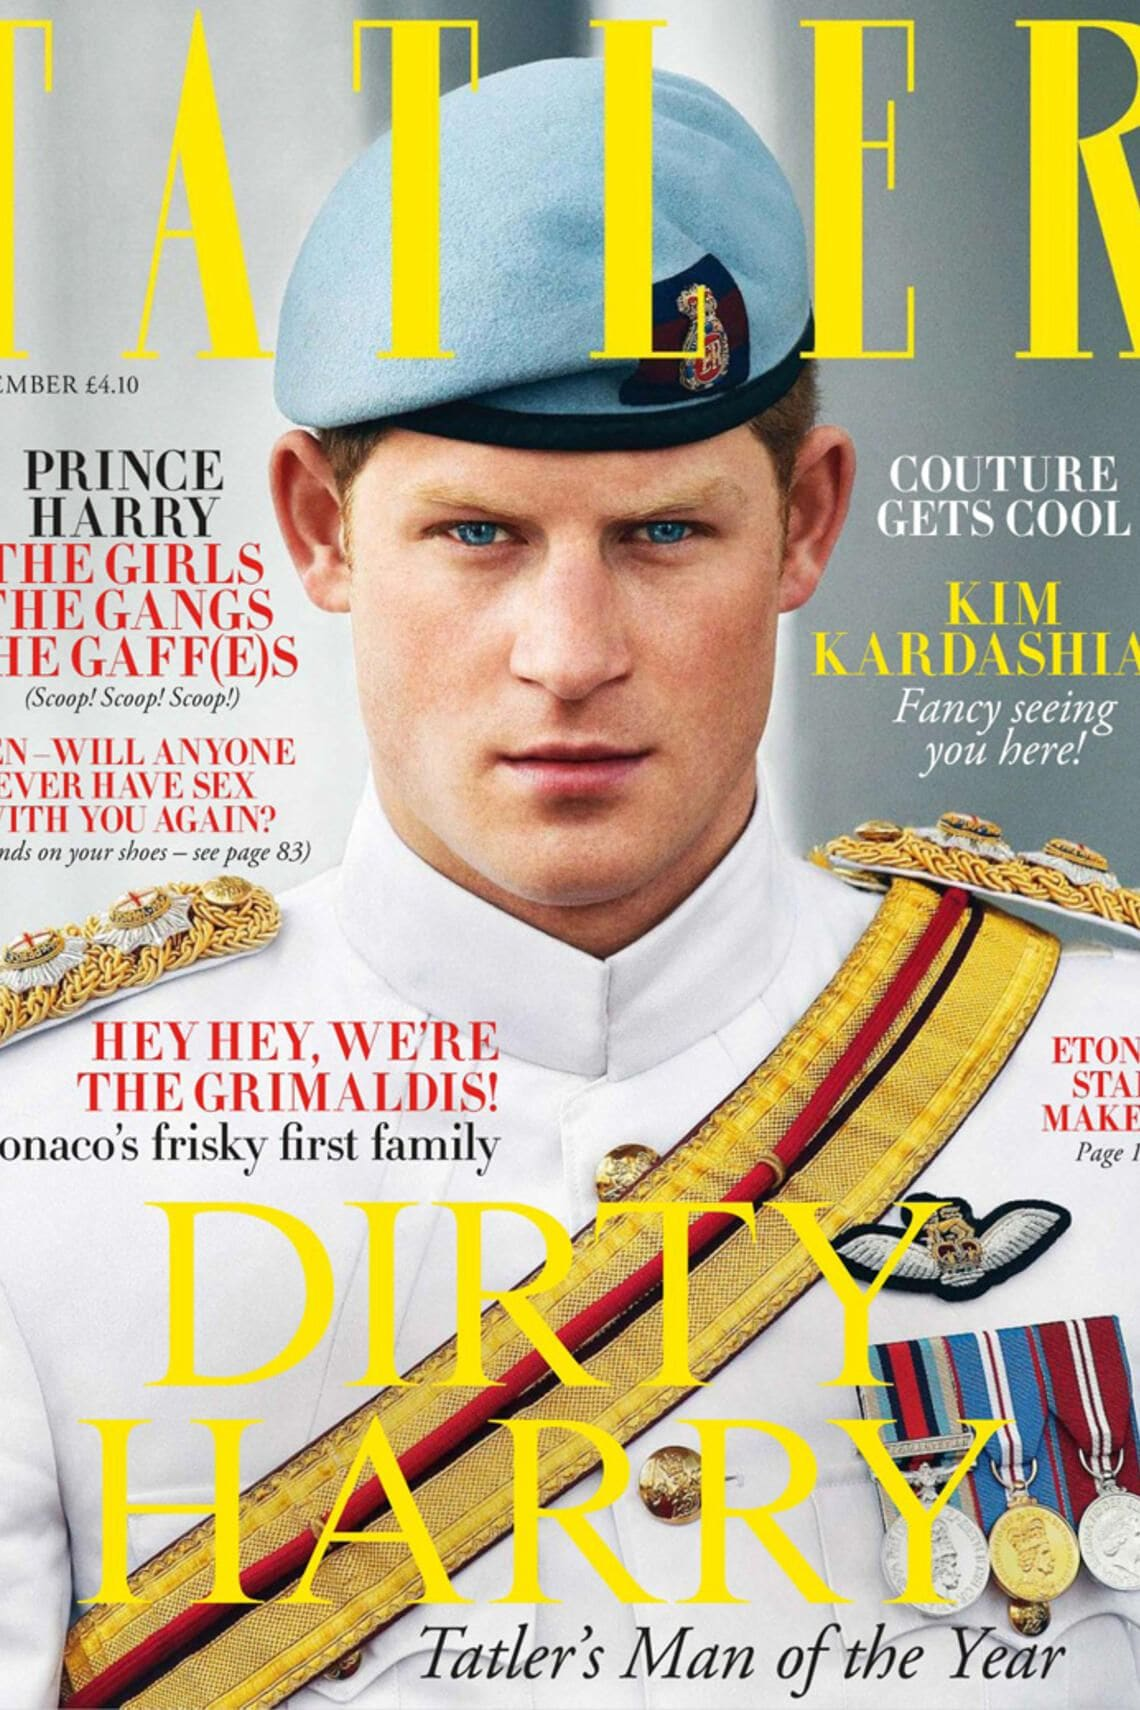 Prinz Harry Wales auf Tatler Cover als Man of the Year